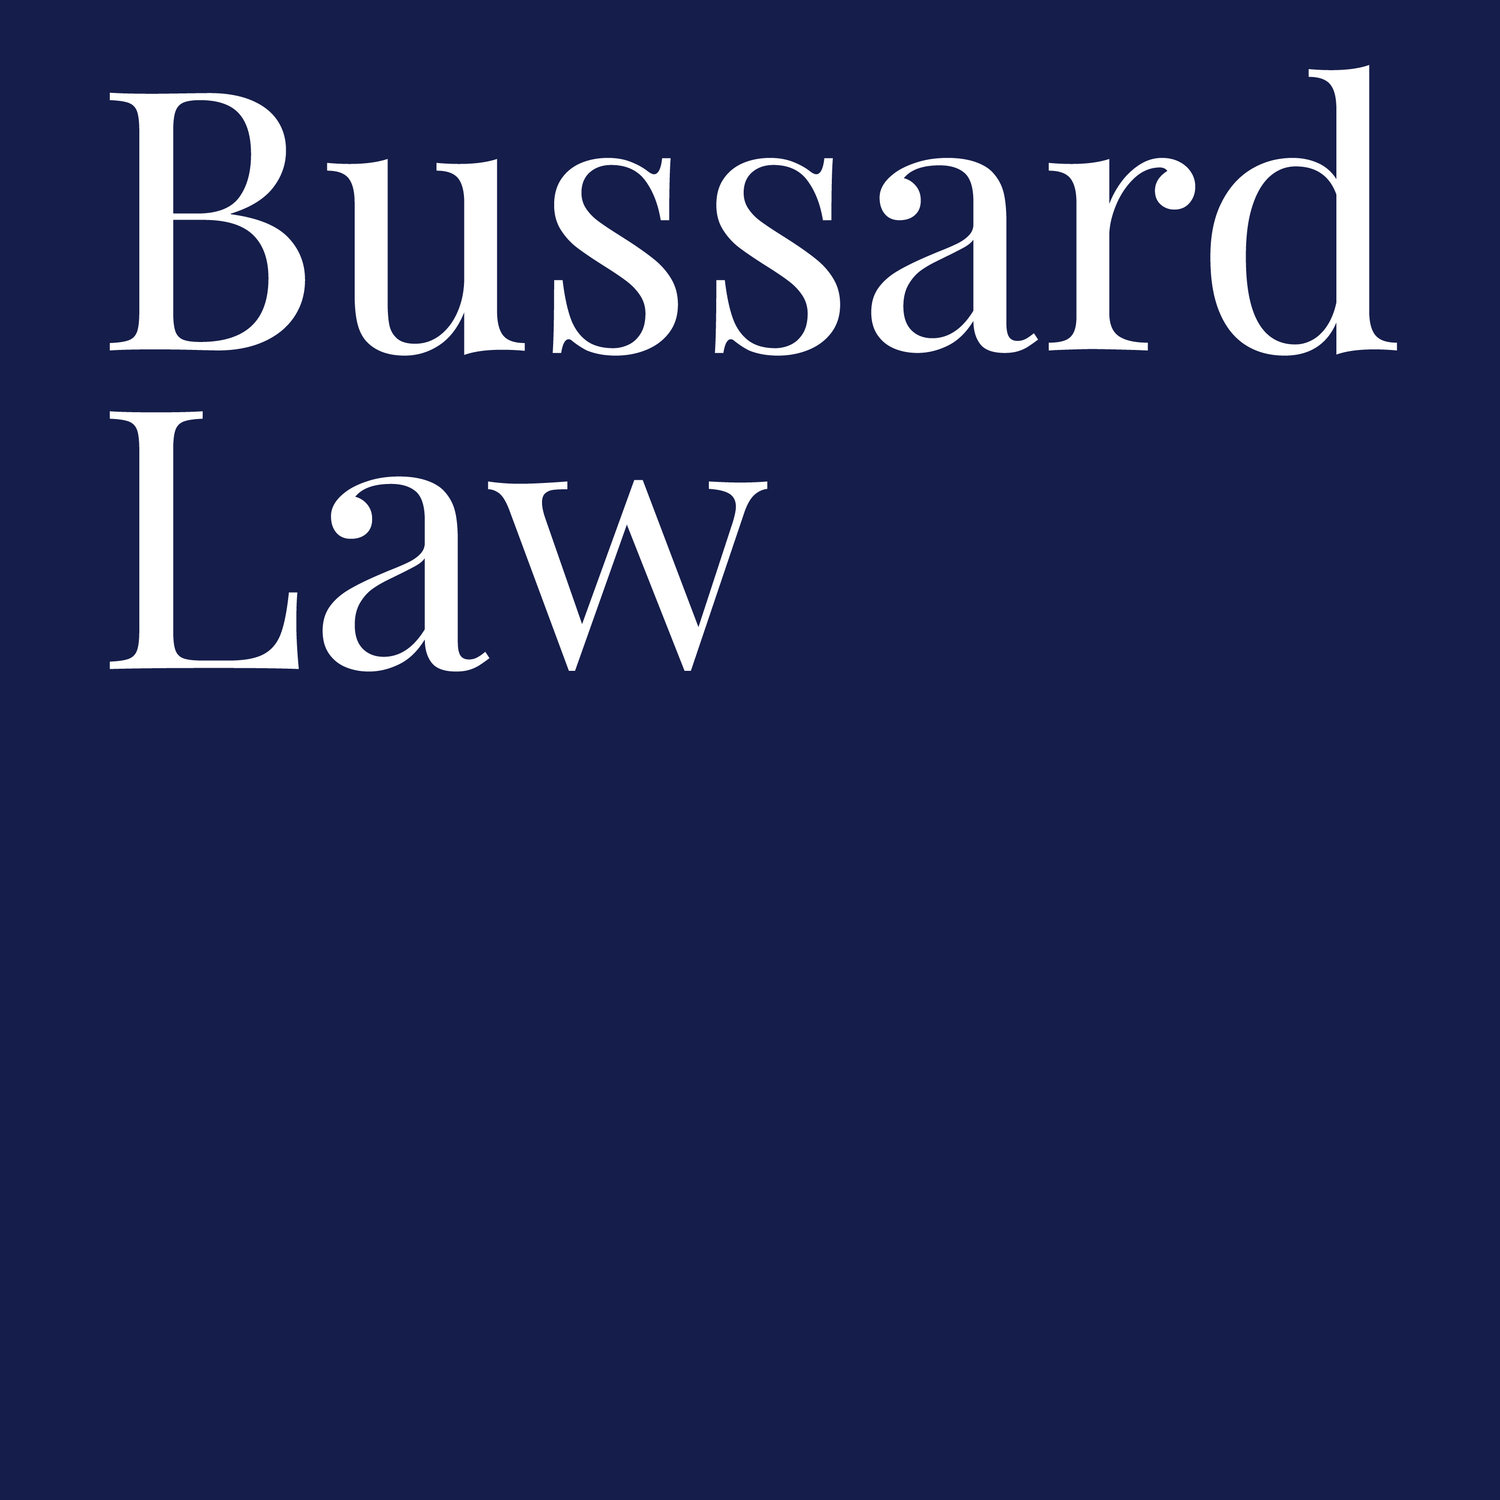 Bussard Law Firm